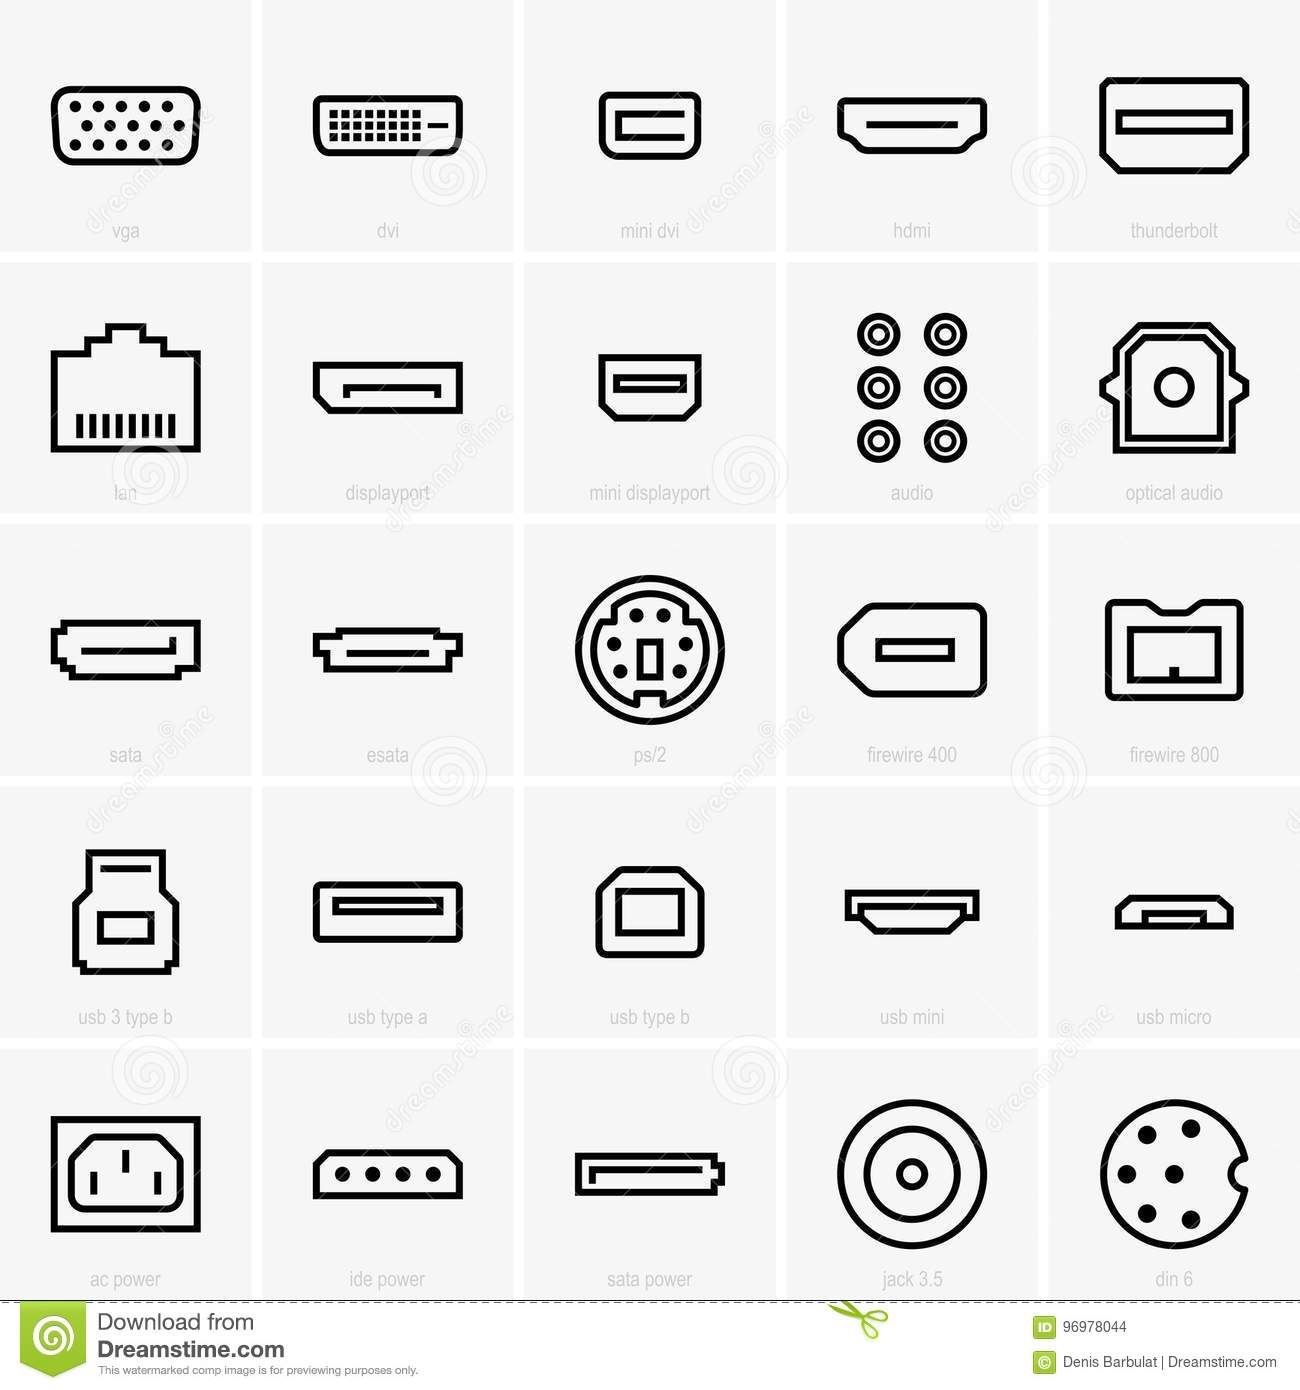 interface icons stock vector  illustration of esata  power